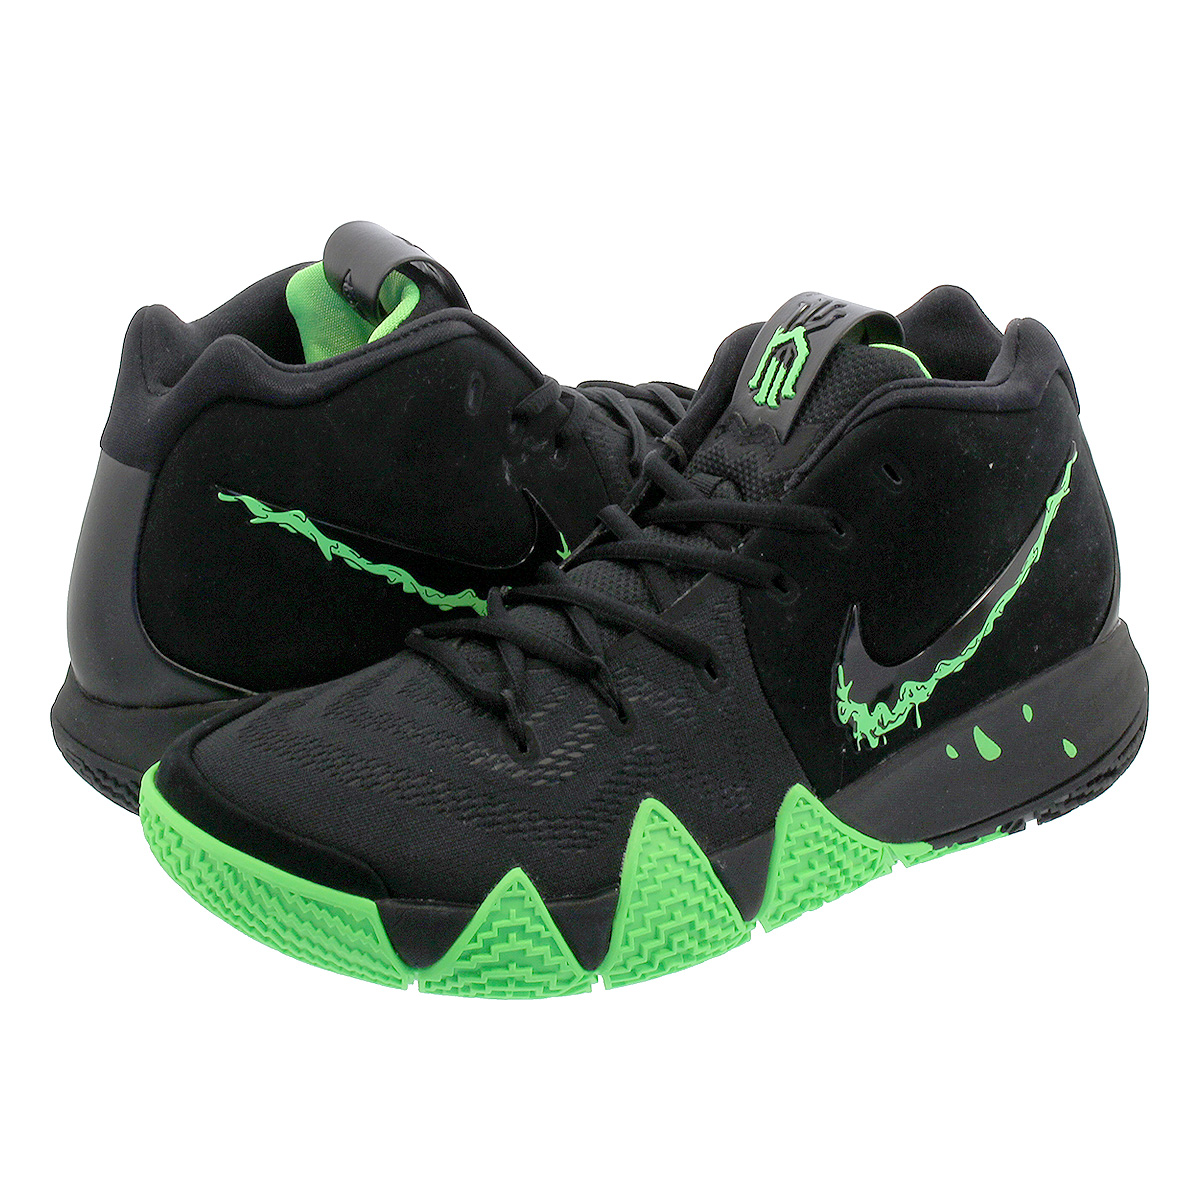 sale retailer a18eb fef4d NIKE KYRIE 4 EP Nike chi Lee 4 EP BLACK/RAGE GREEN 943,807-012